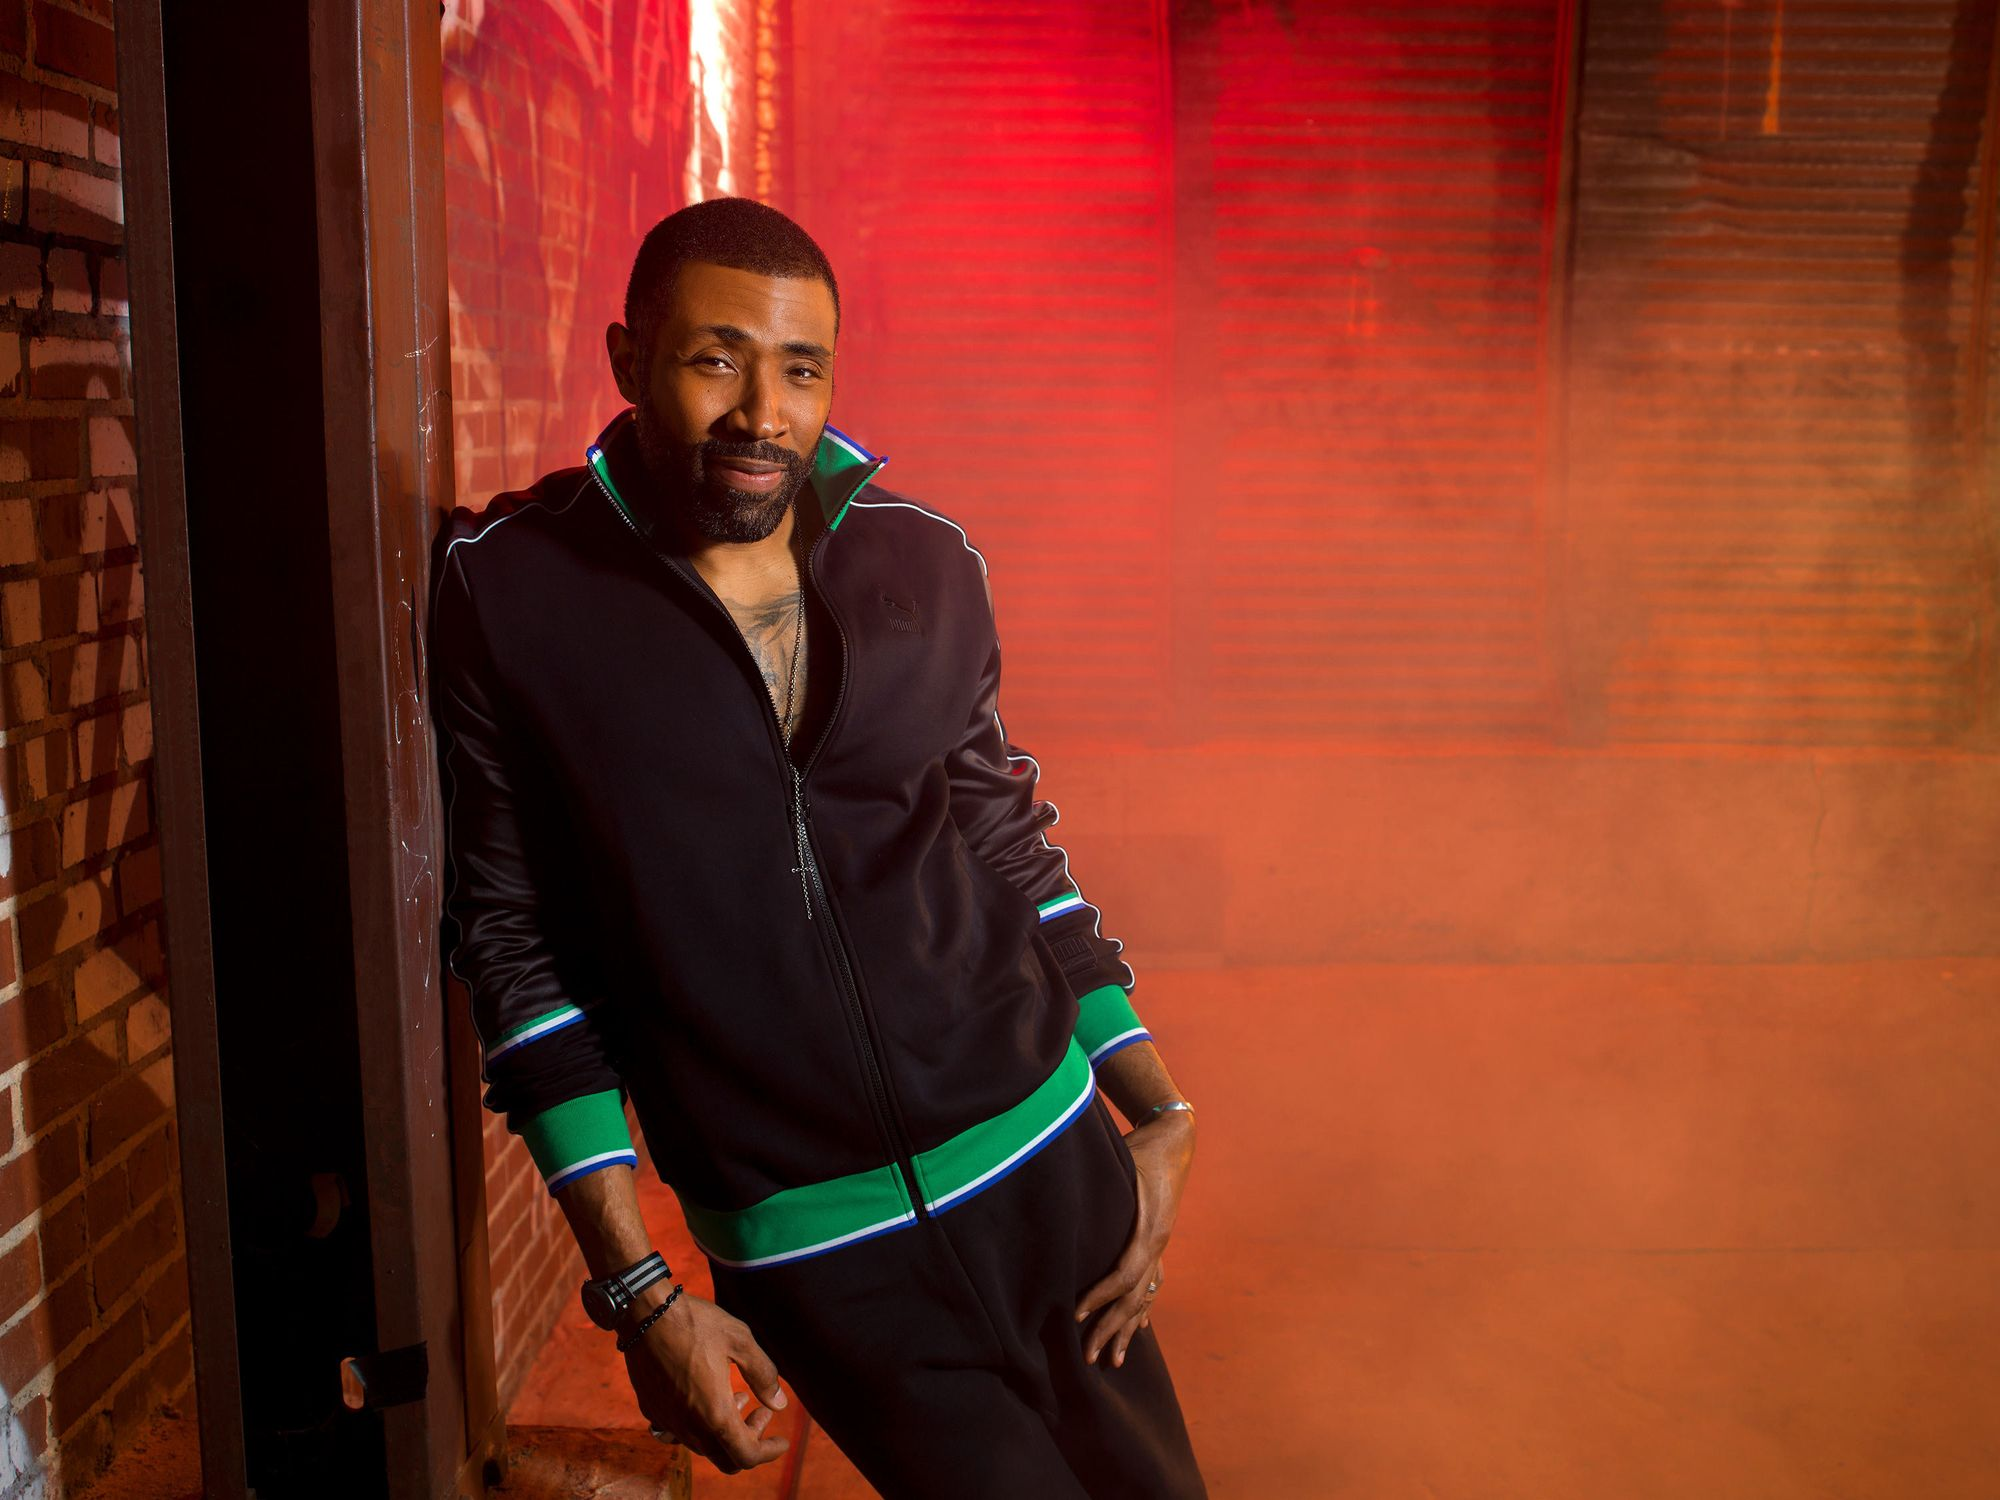 Actor Cress Williams leaning against a wall.